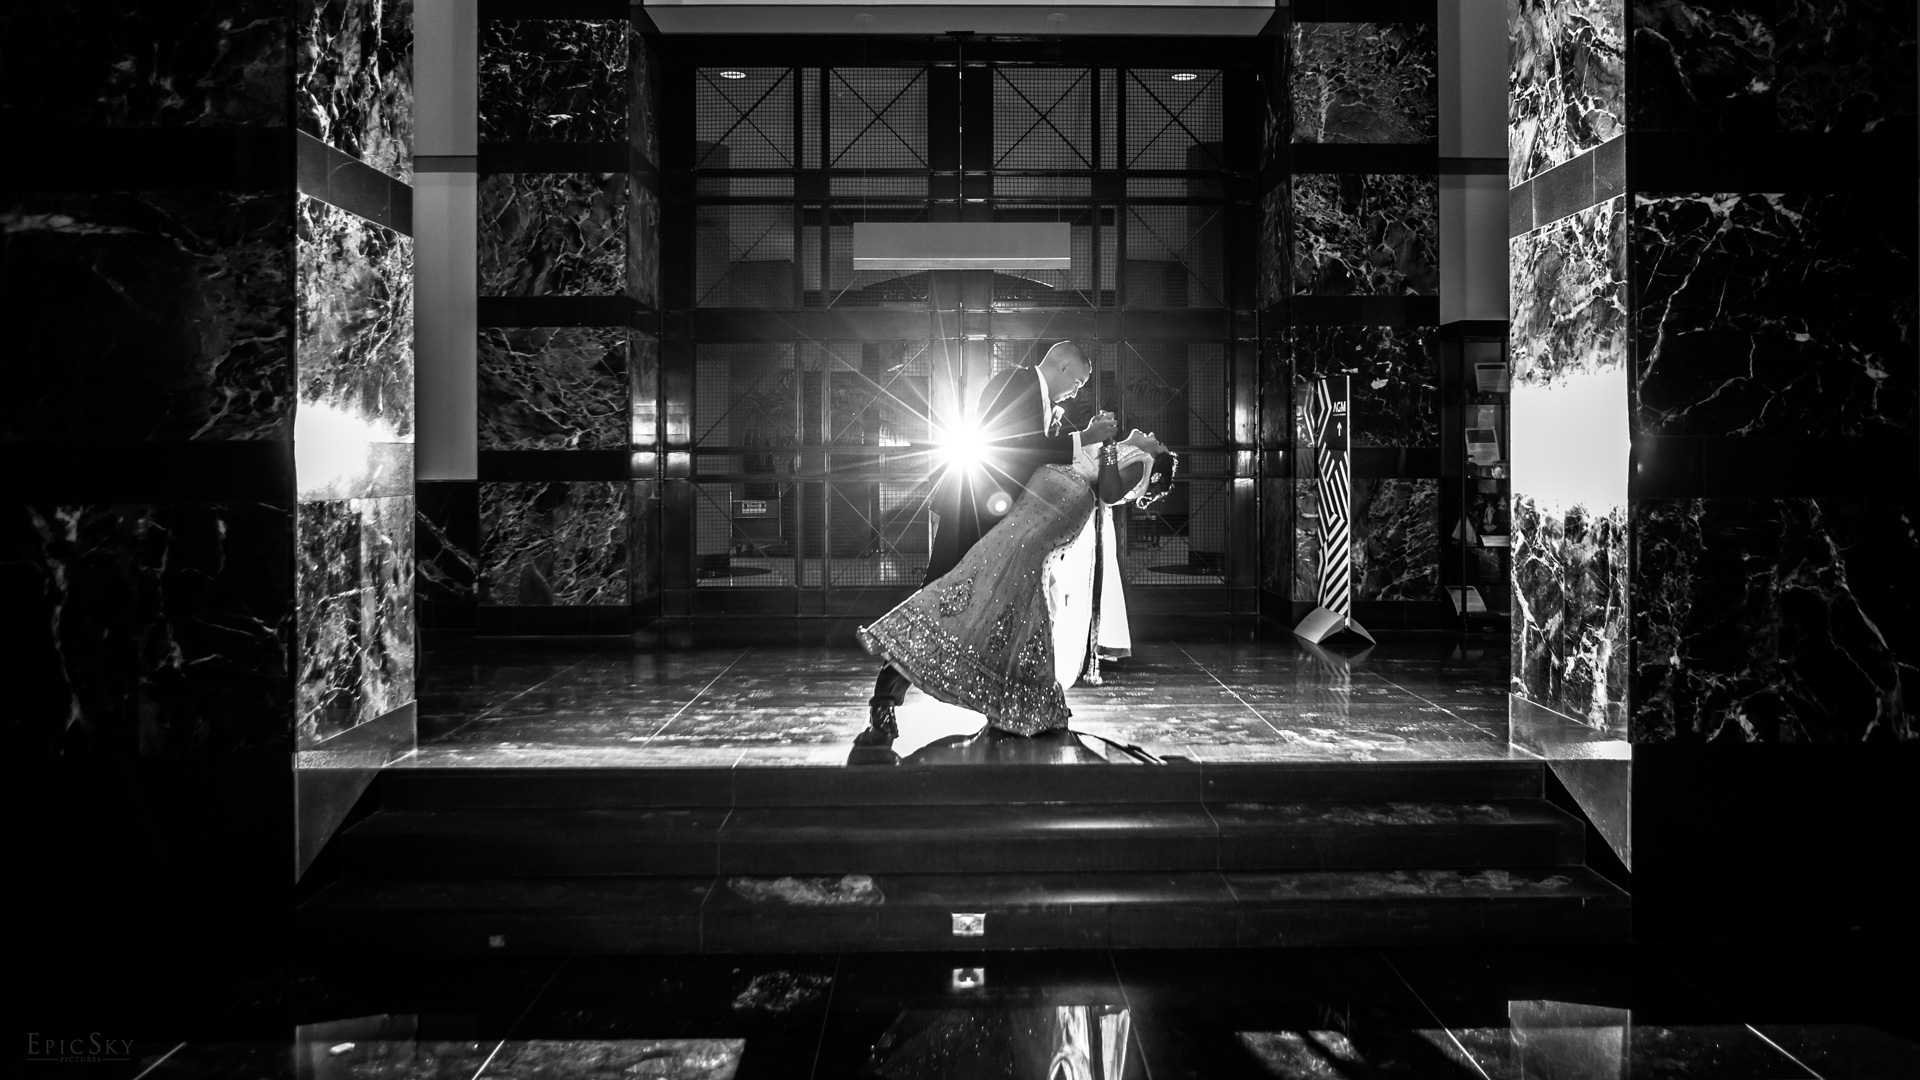 epic_sky_pictures_love_romance_photoshoot_wedding_day_photography_downtown_mississauga_blackandwhite_canada_bride_groom_wedding_epicskypictures_site